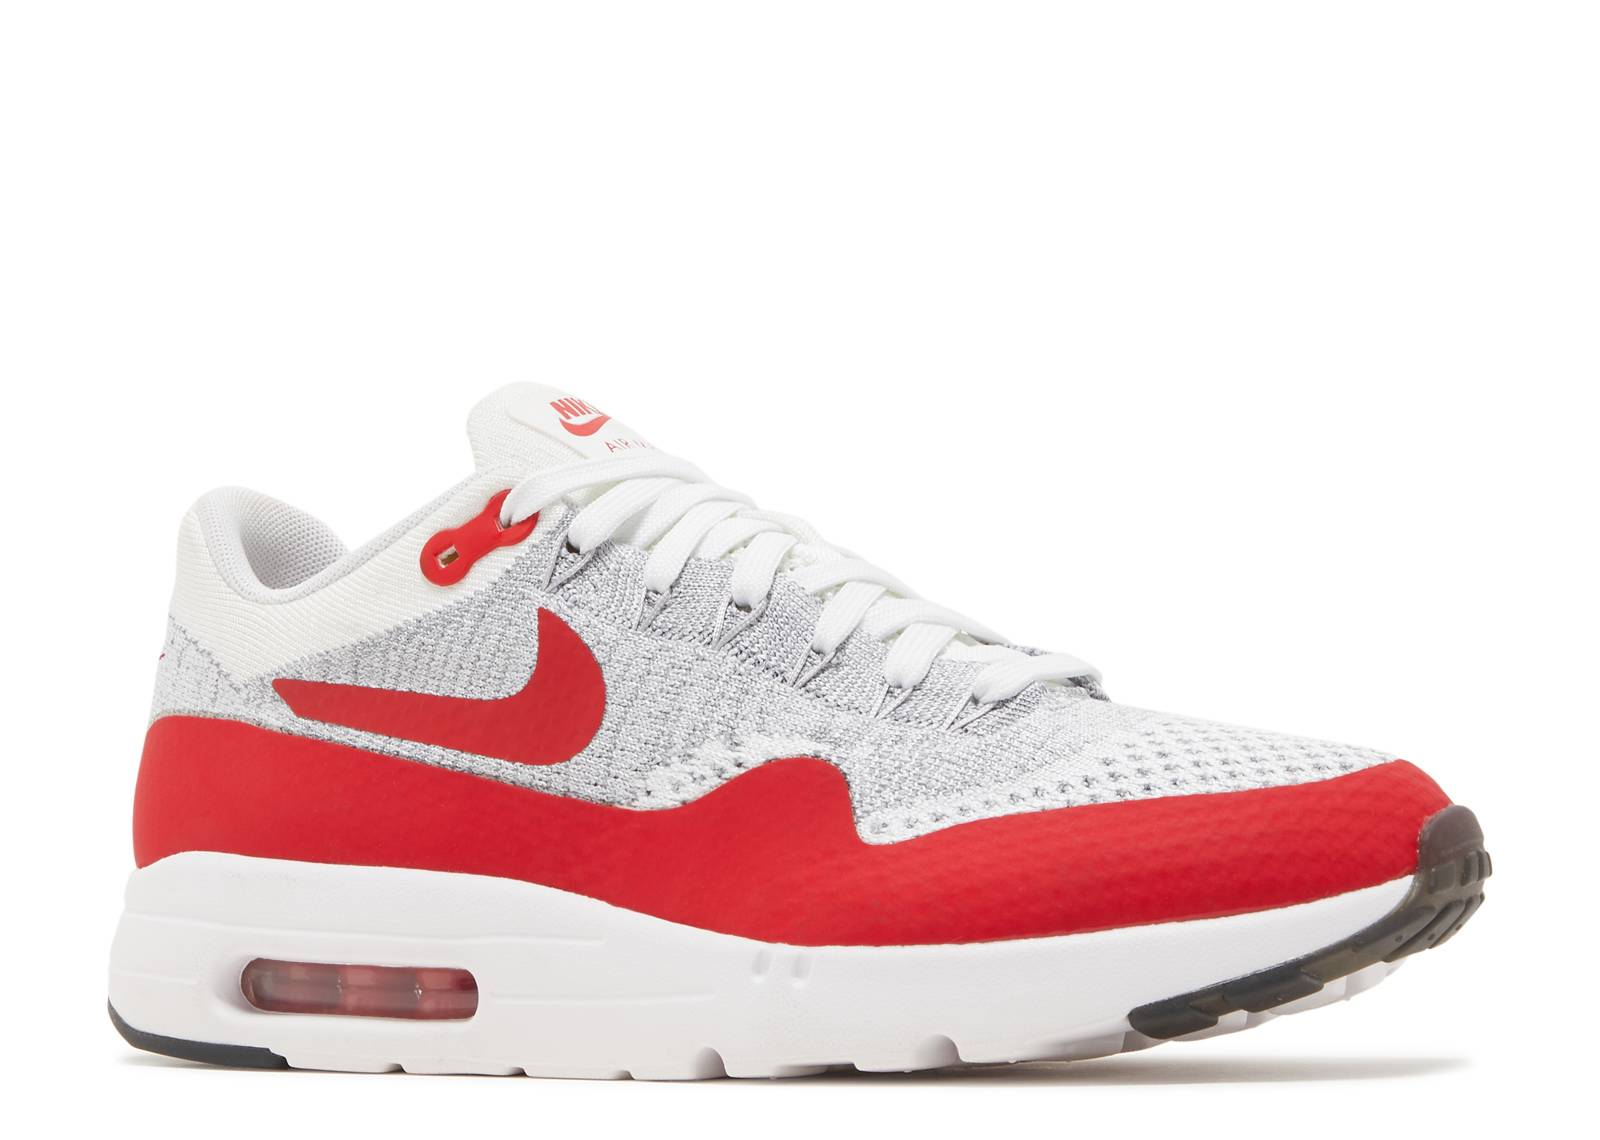 air max 1 ultra flyknit white university red. Black Bedroom Furniture Sets. Home Design Ideas